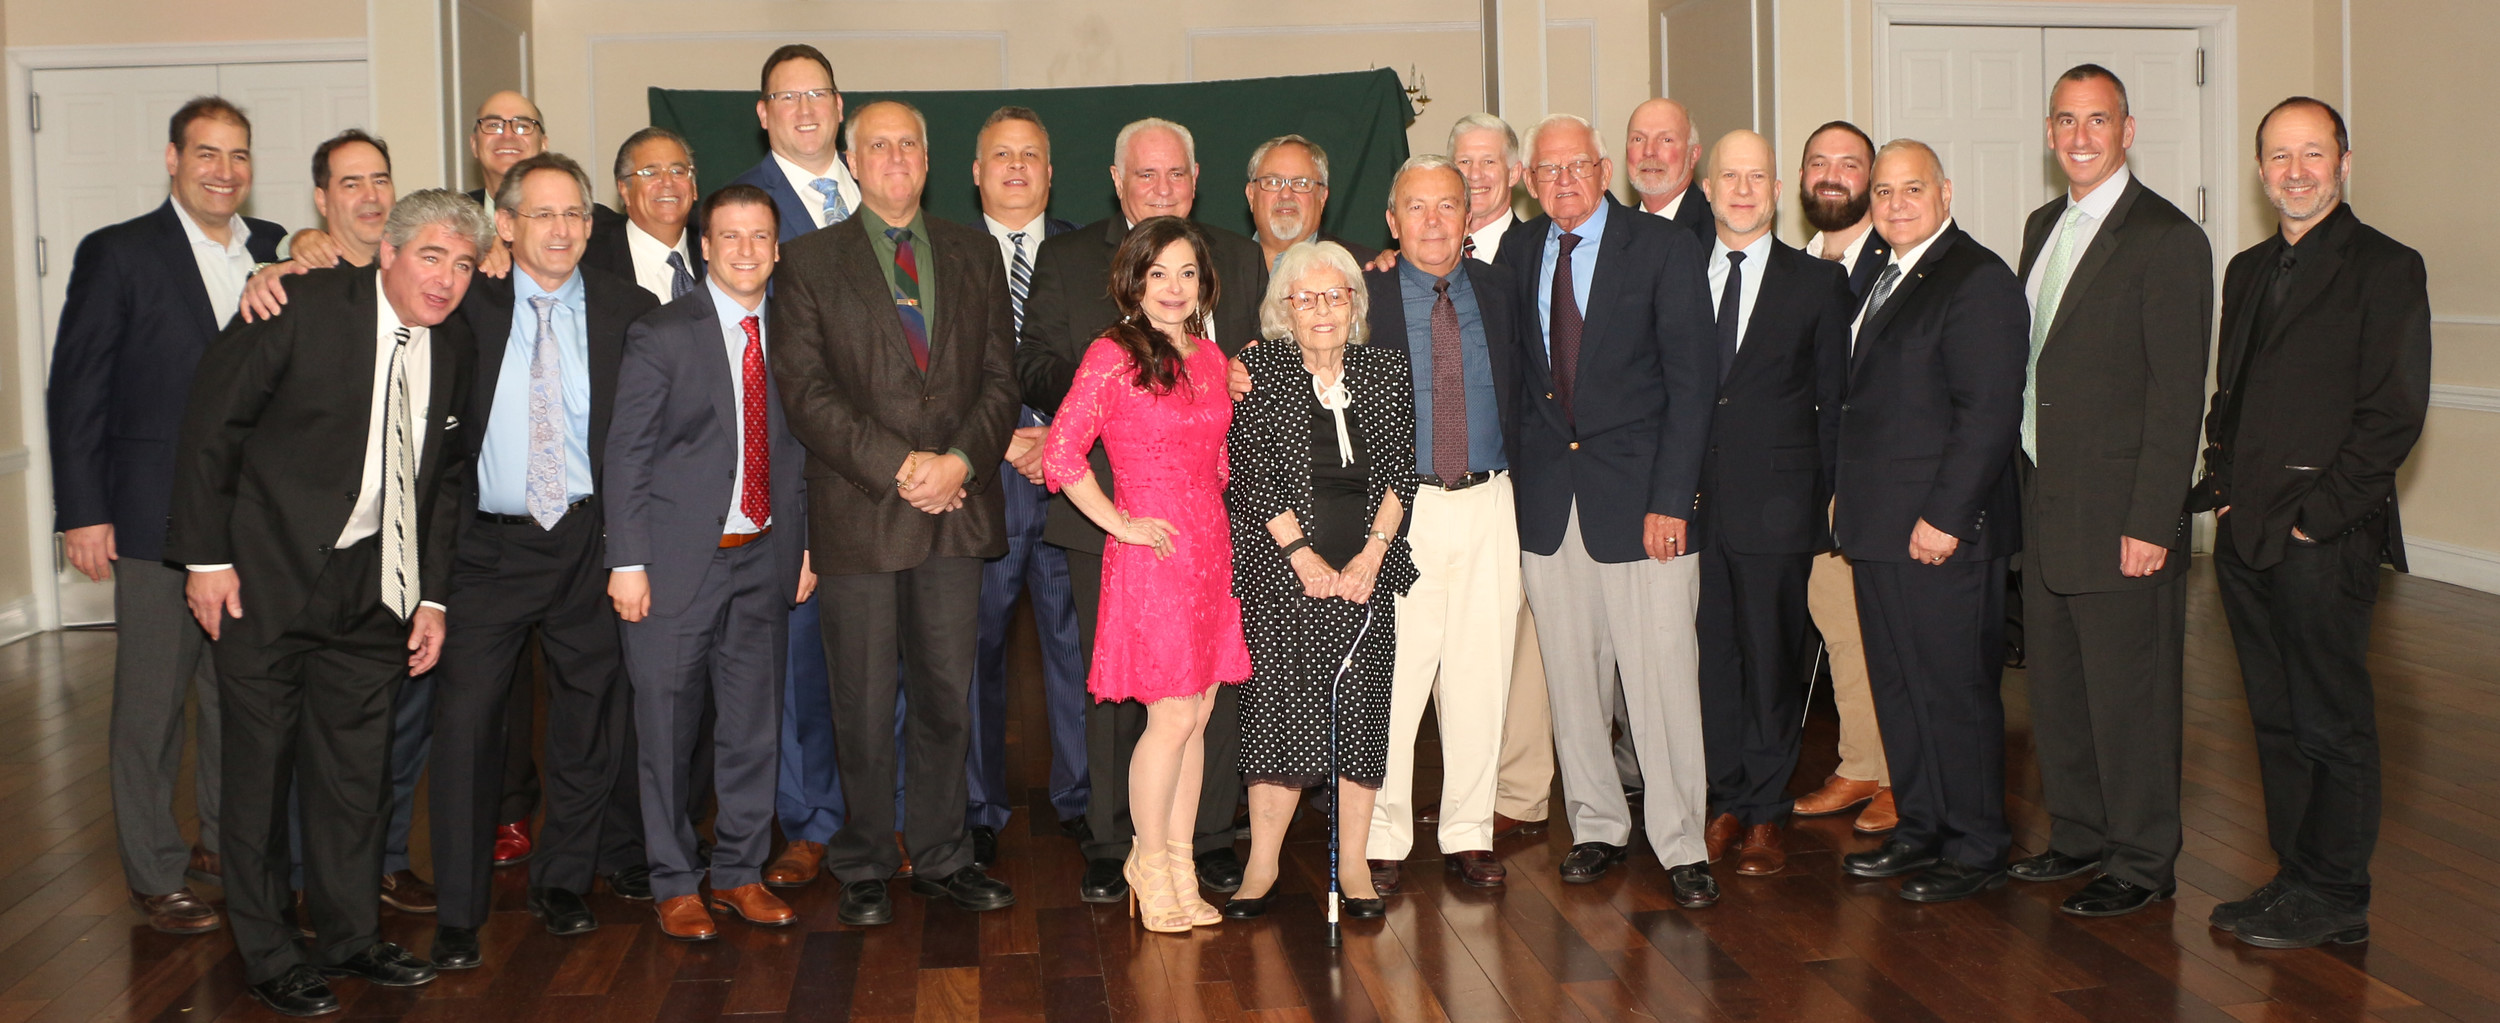 Coinciding with Bellmore's JFK High School's 50th anniversary, 13 former students were inducted into the school's Hall of Fame, and two teachers into its Wall of Honor. Alumni included Lyle Phillips, Richard Jackson, Steven Lutvak, Mark Proctor, Joseph Alagna, Howard Riina, Craig Greben, Michael Greenberg, Wayne Levinson, Thomas Buda, Merrick Wetzler, David Silverberg and Jonathan Haas. The faculty members were Shula Hirsch and Gregory Maushart.